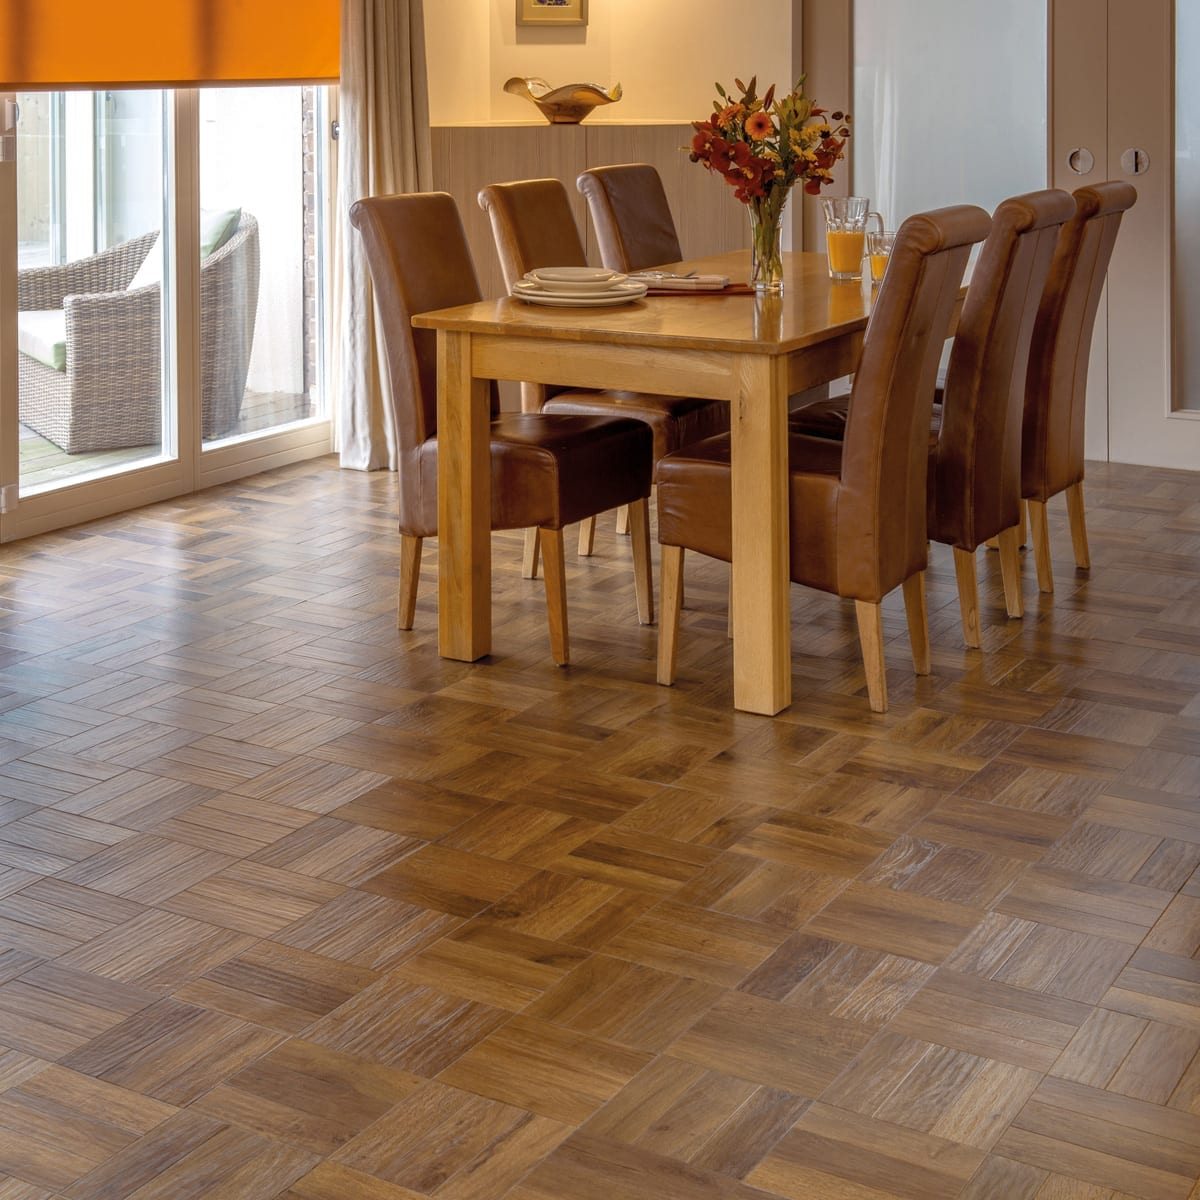 Dining Room Tile Ideas Karndean Art Select Parquet Mckenzie And Willis